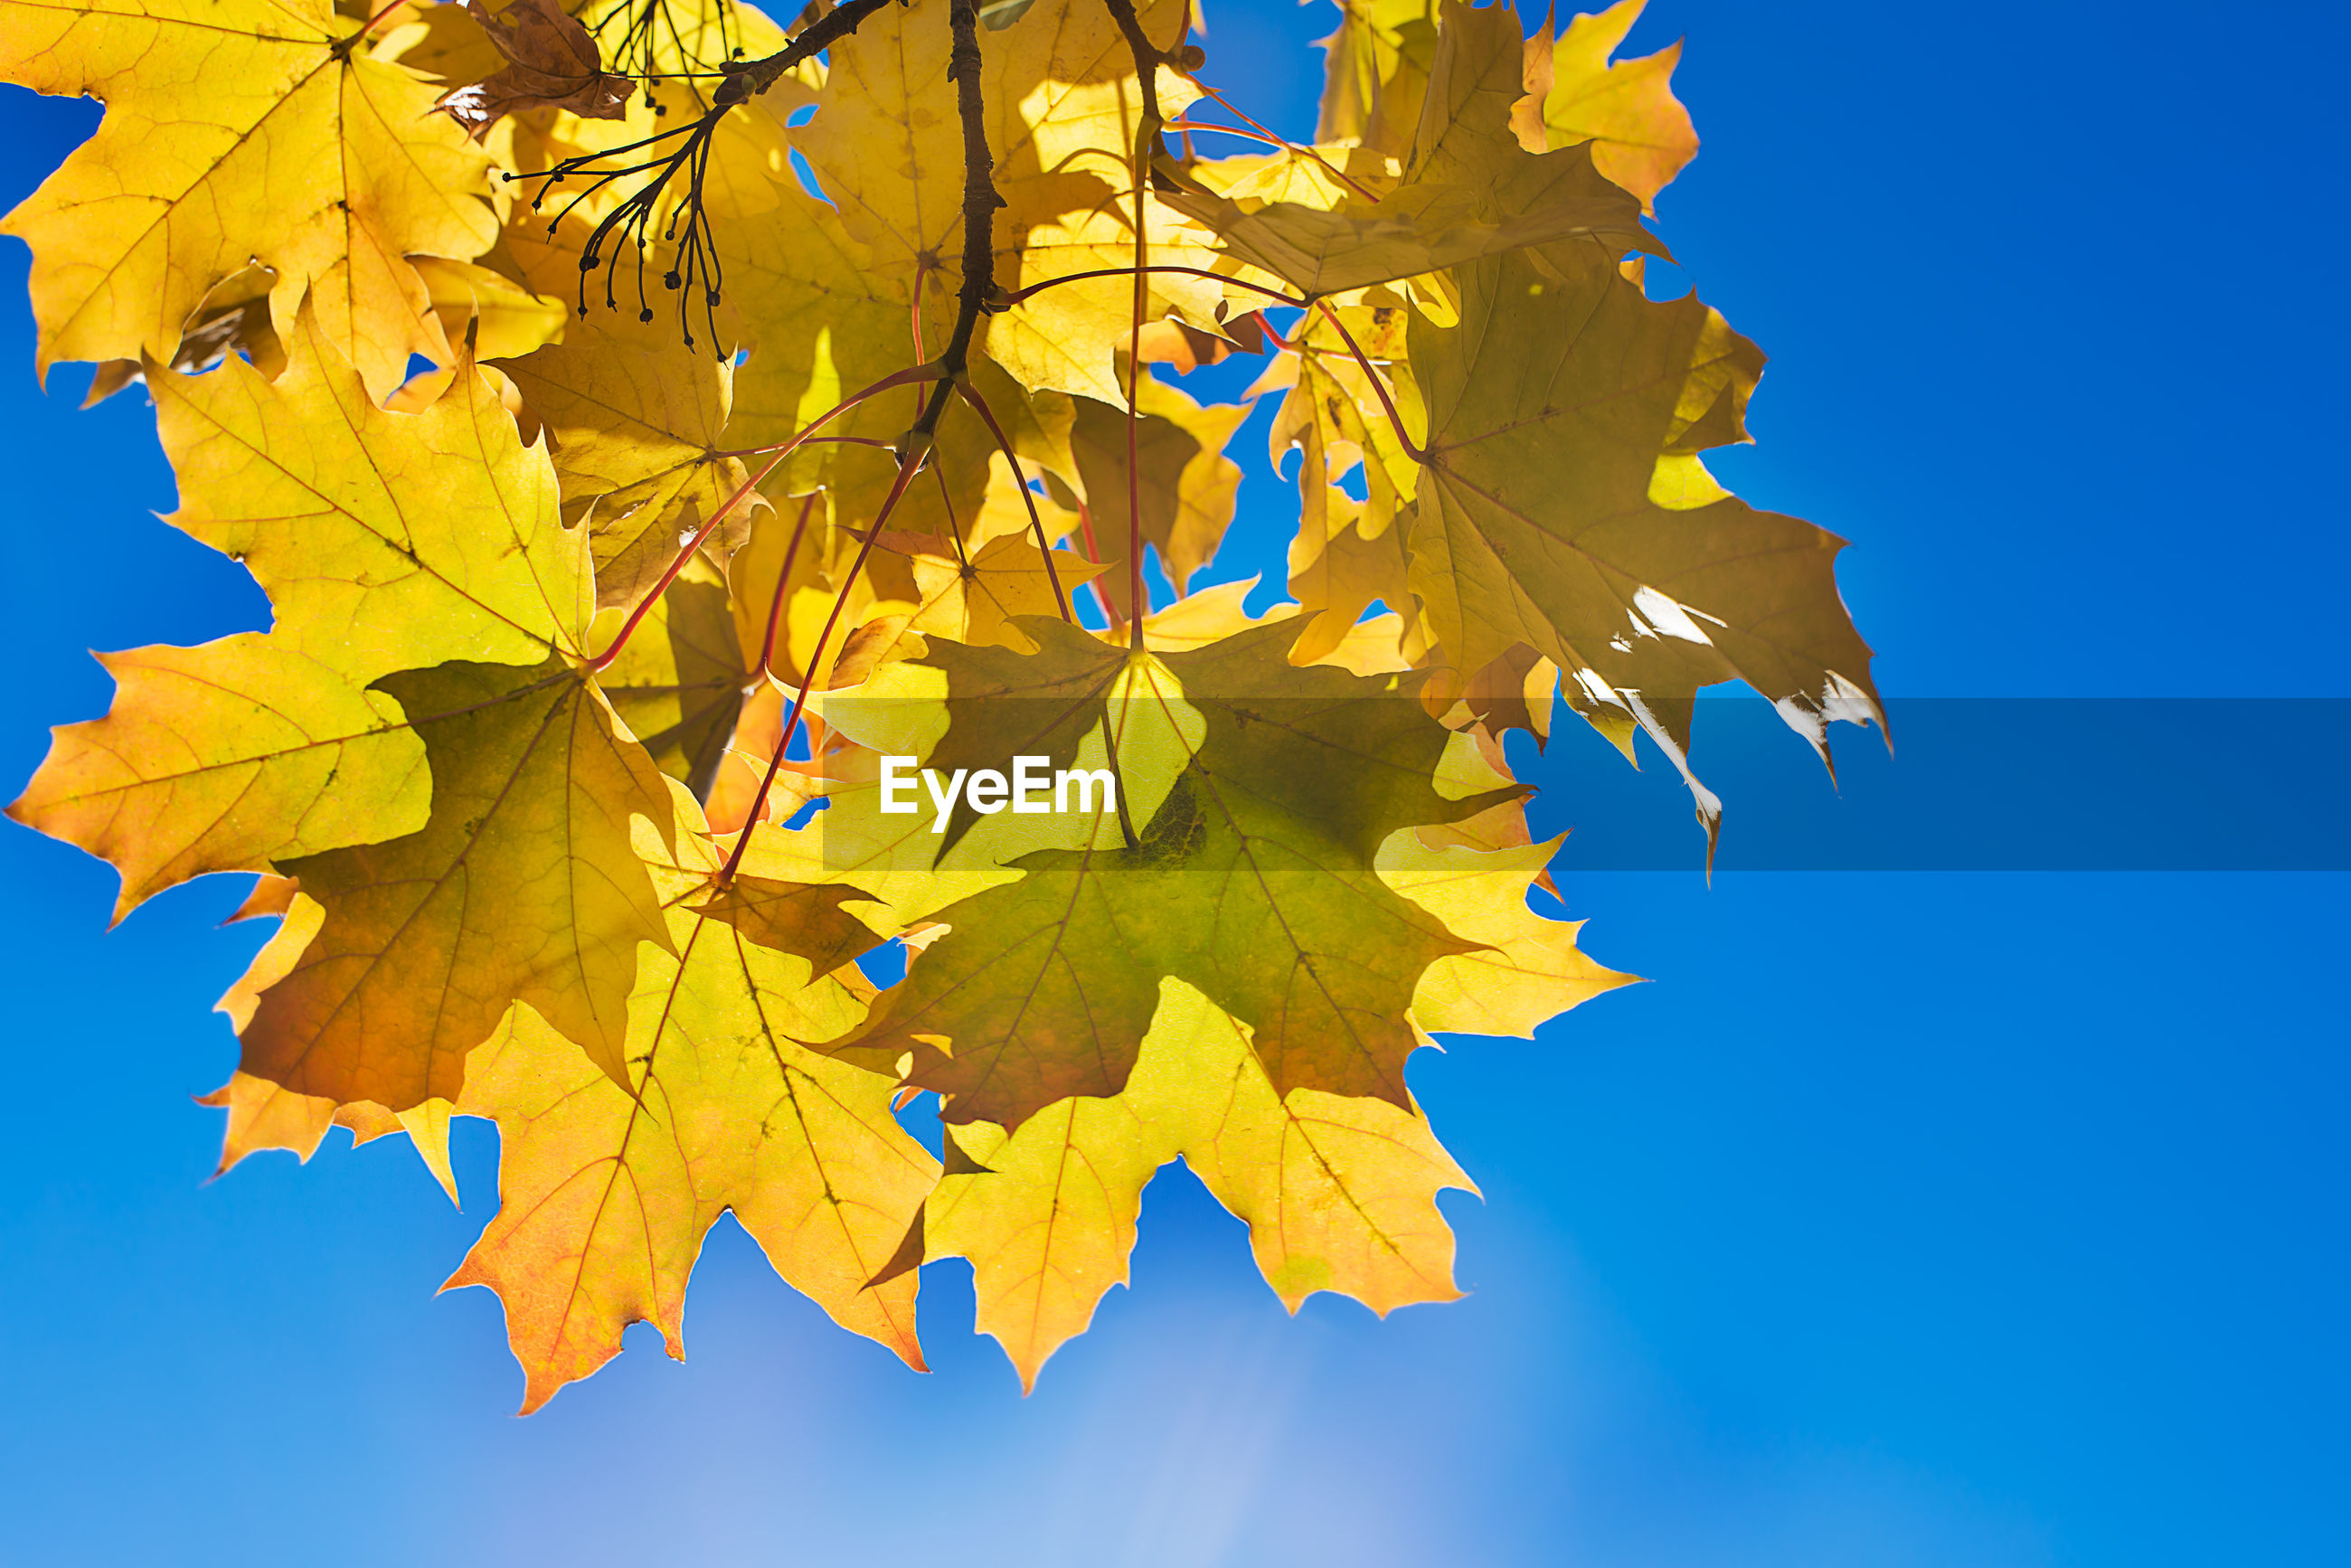 LOW ANGLE VIEW OF MAPLE LEAVES AGAINST BLUE SKY